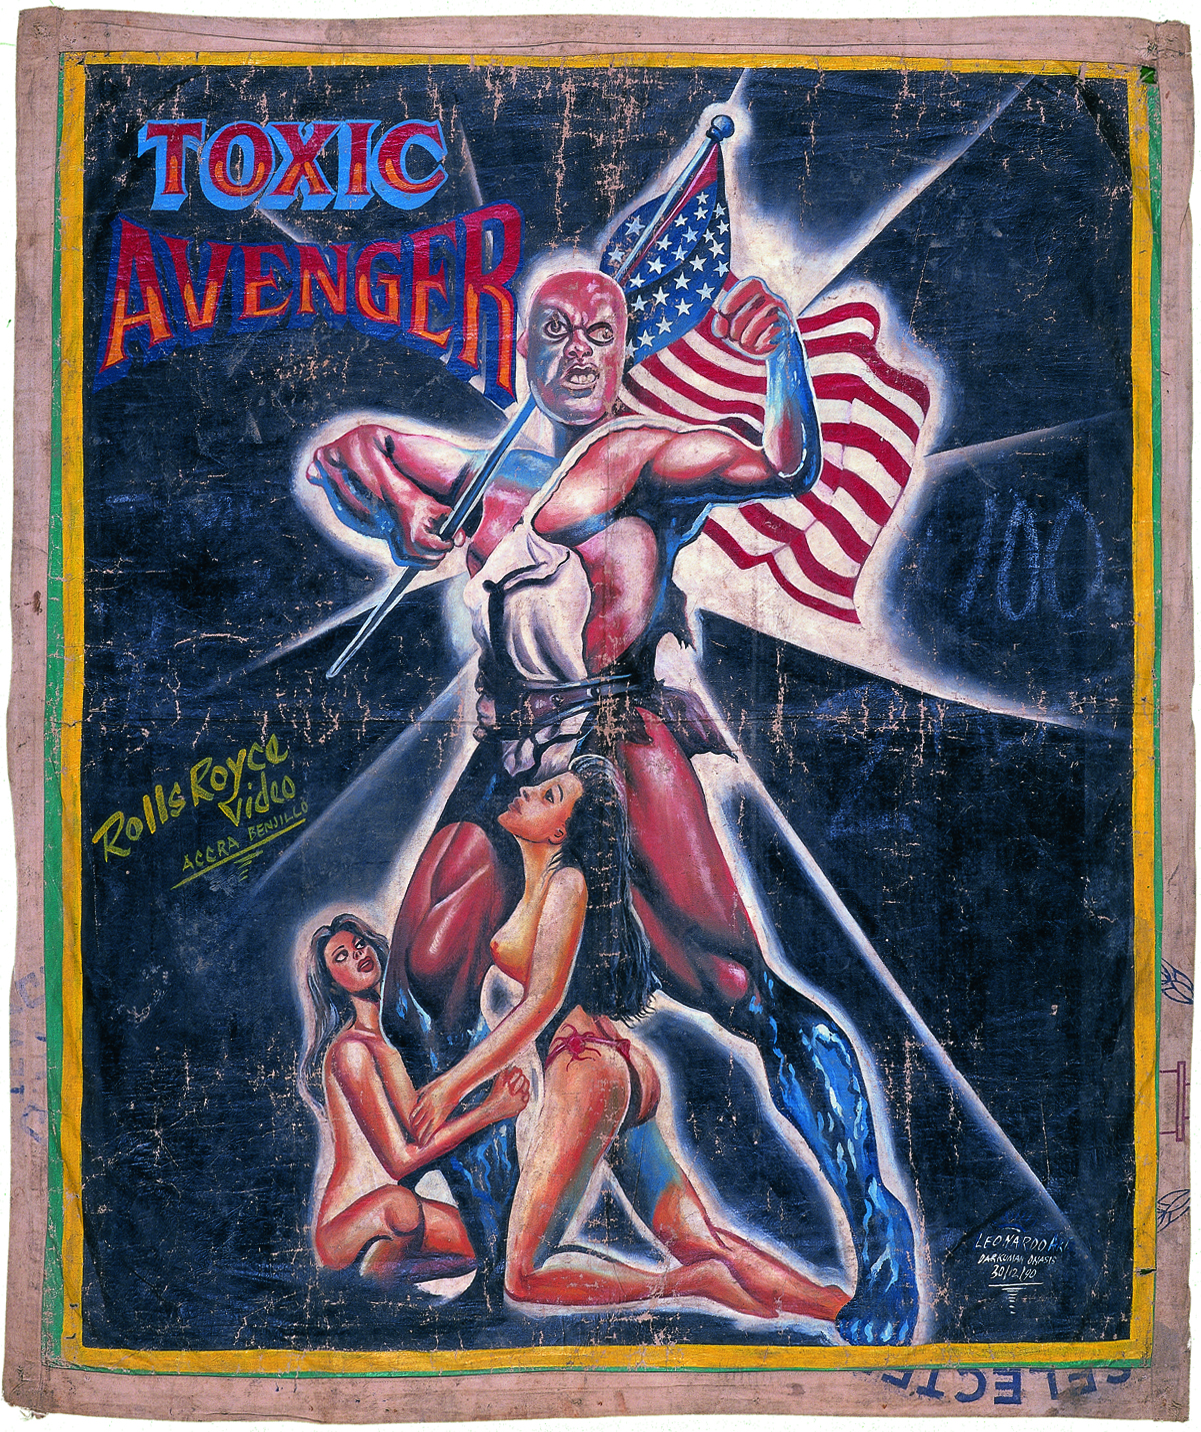 hand-painted poster of a superhero in a tight red costume holding the American flag while two women kneel around him